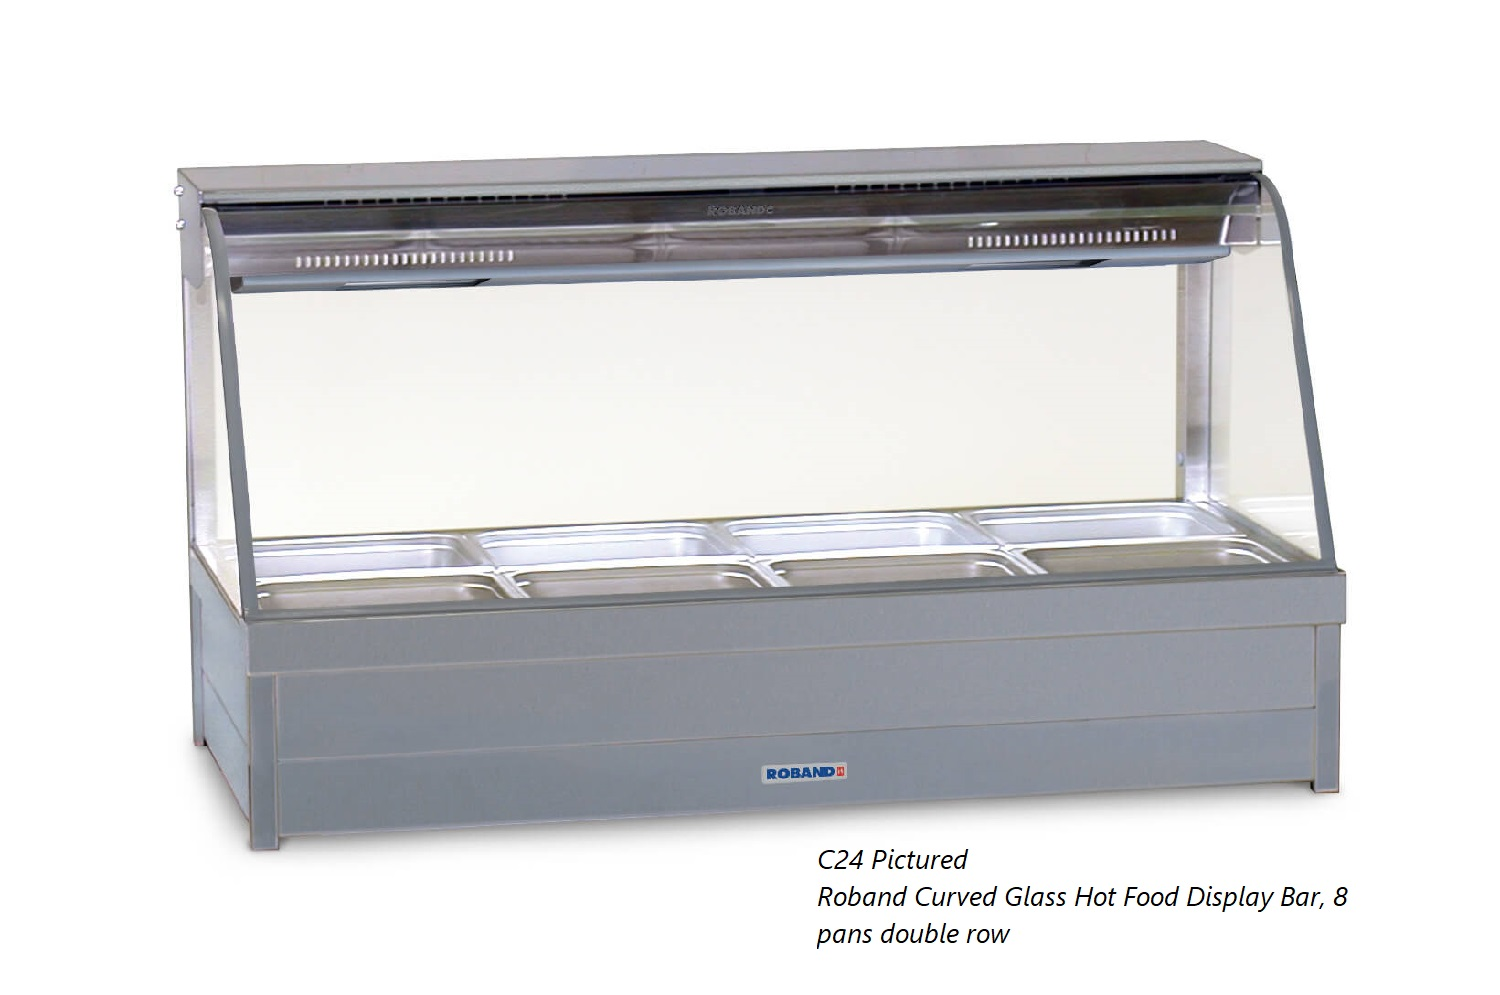 Roband Curved Glass Hot Food Display Bar, 10 pans double row